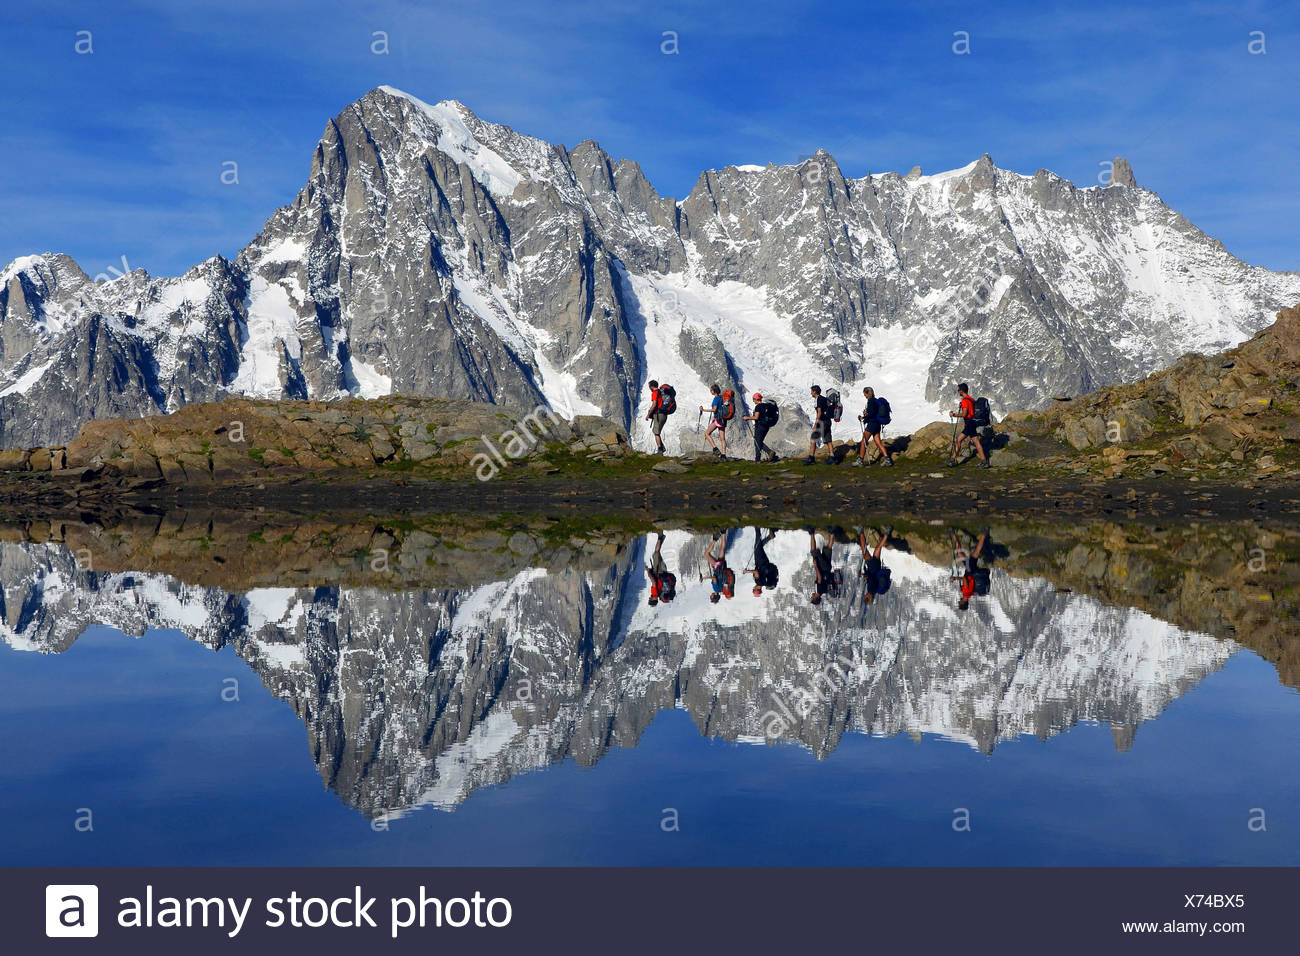 Trekkers and Mont Blanc (Monte Bianco) mirrored in the lake, route to pascal bivouac, Aosta Valley, Italy - Stock Image